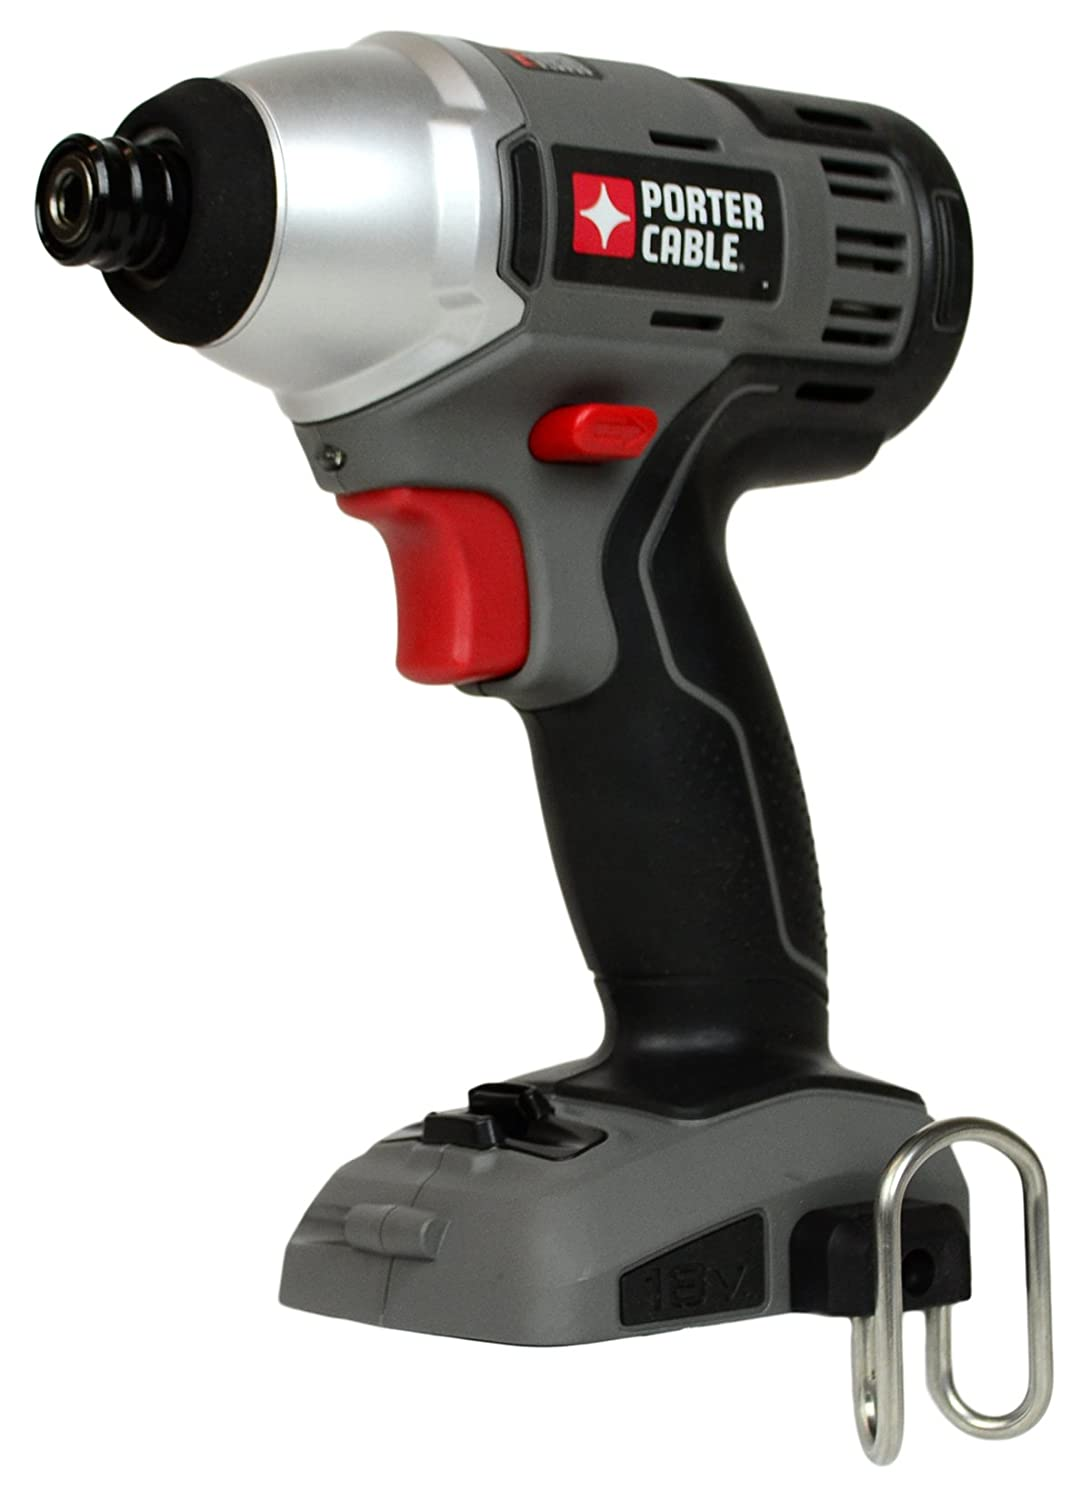 PORTER-CABLE Bare-Tool PC1801ID 18-Volt 1 4 Hex Drive Cordless Impact Driver Tool Only, No Battery